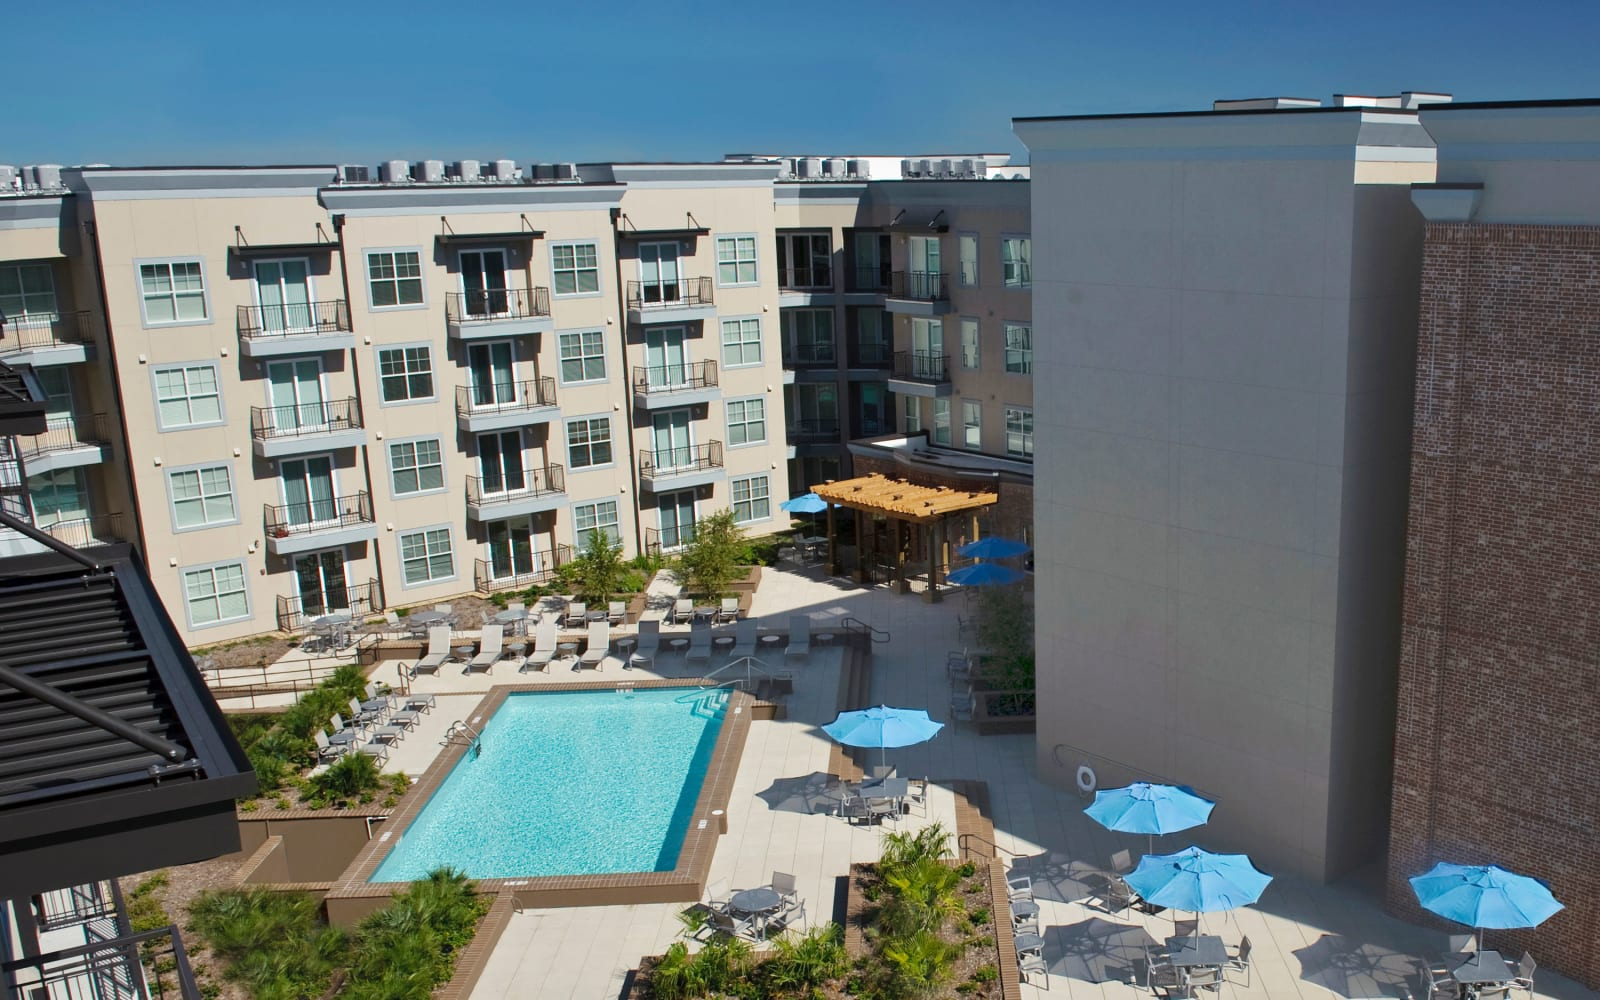 Outdoor pool on a bright day at Crescent Club in New Orleans, Louisiana